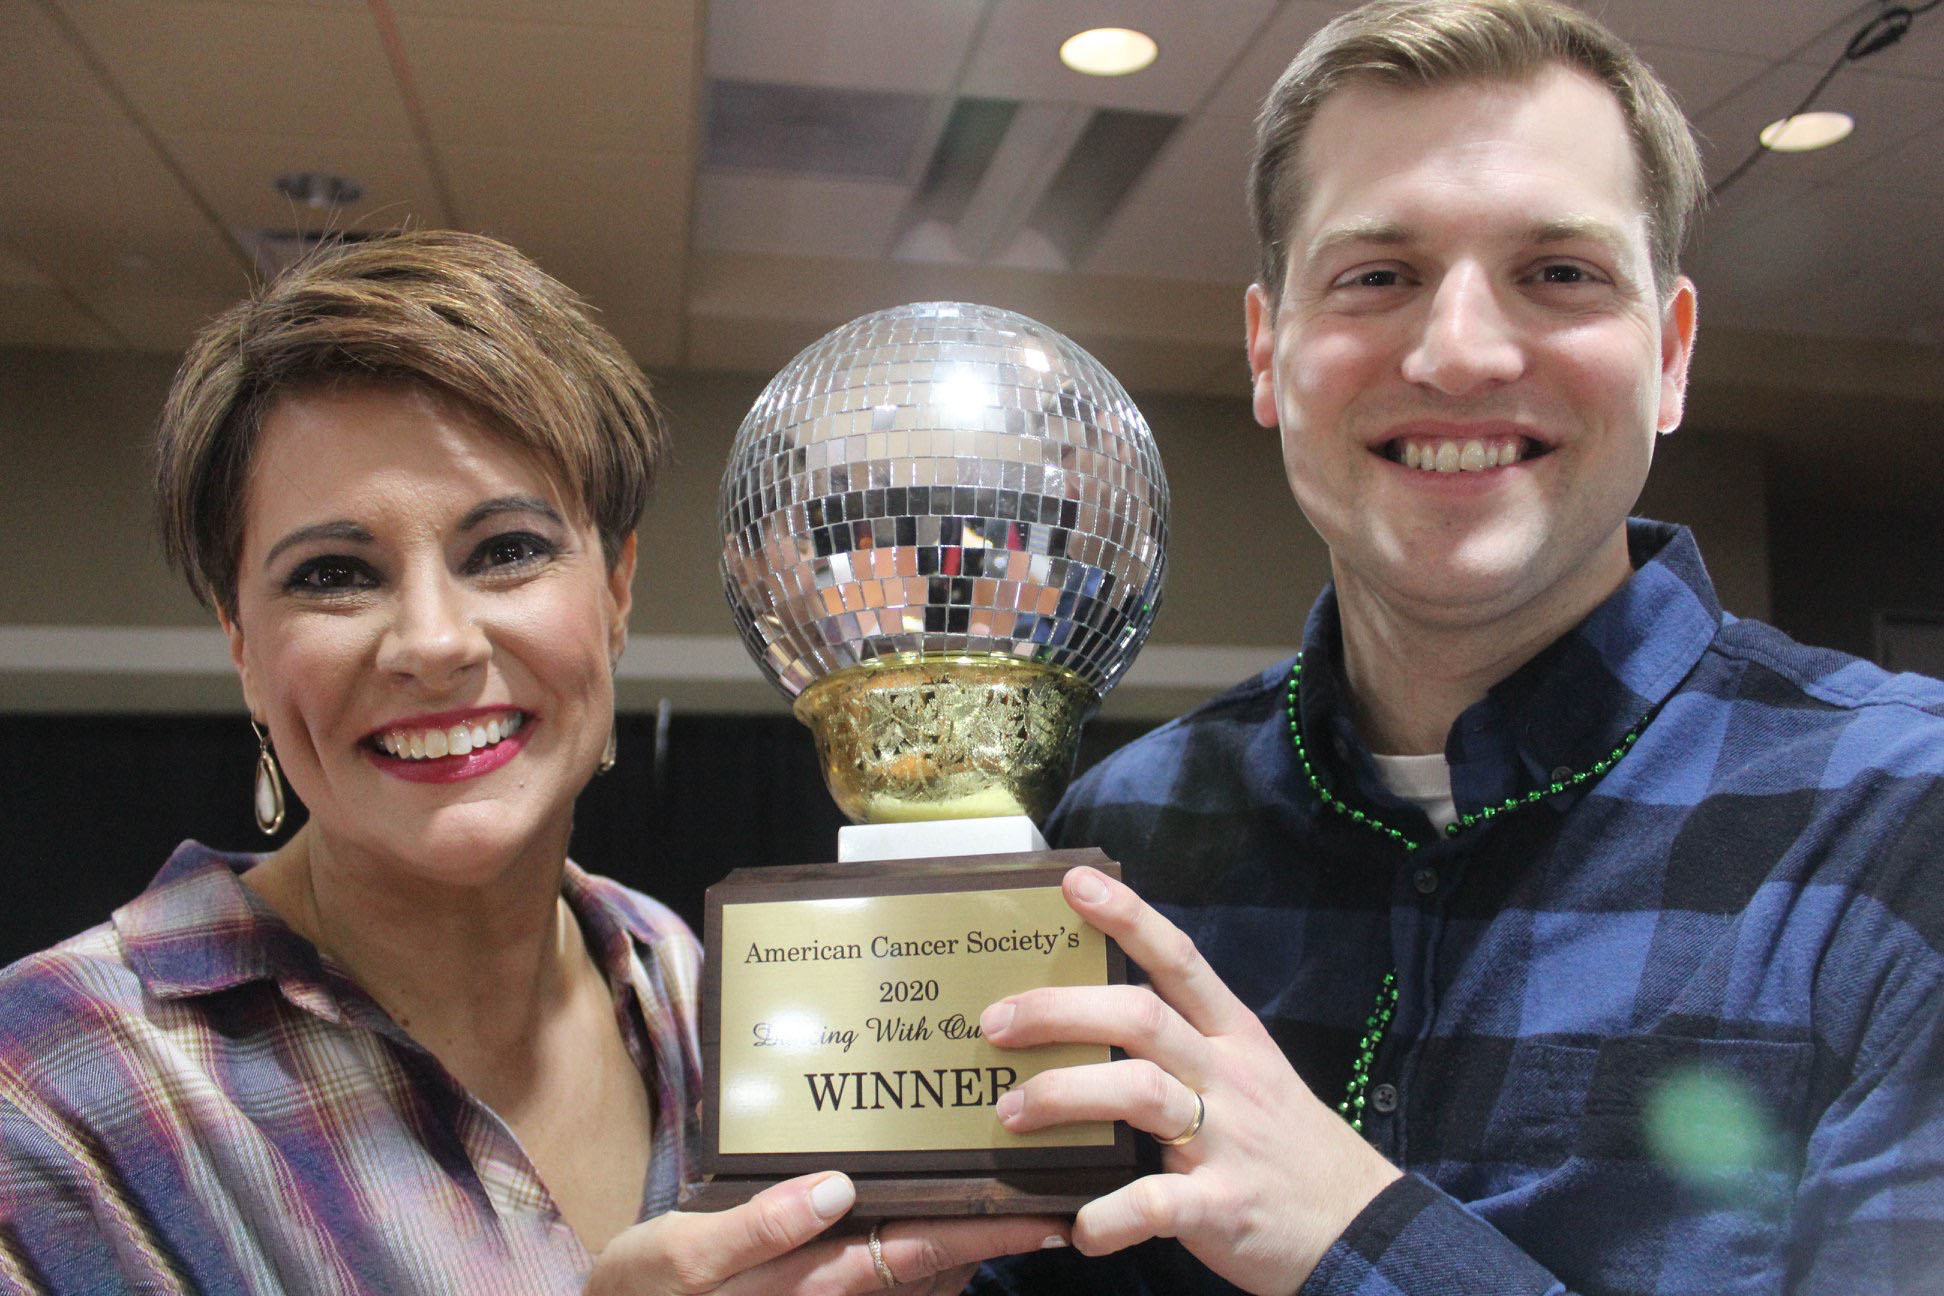 eric straub and trish childers-steckrider smile with trophy